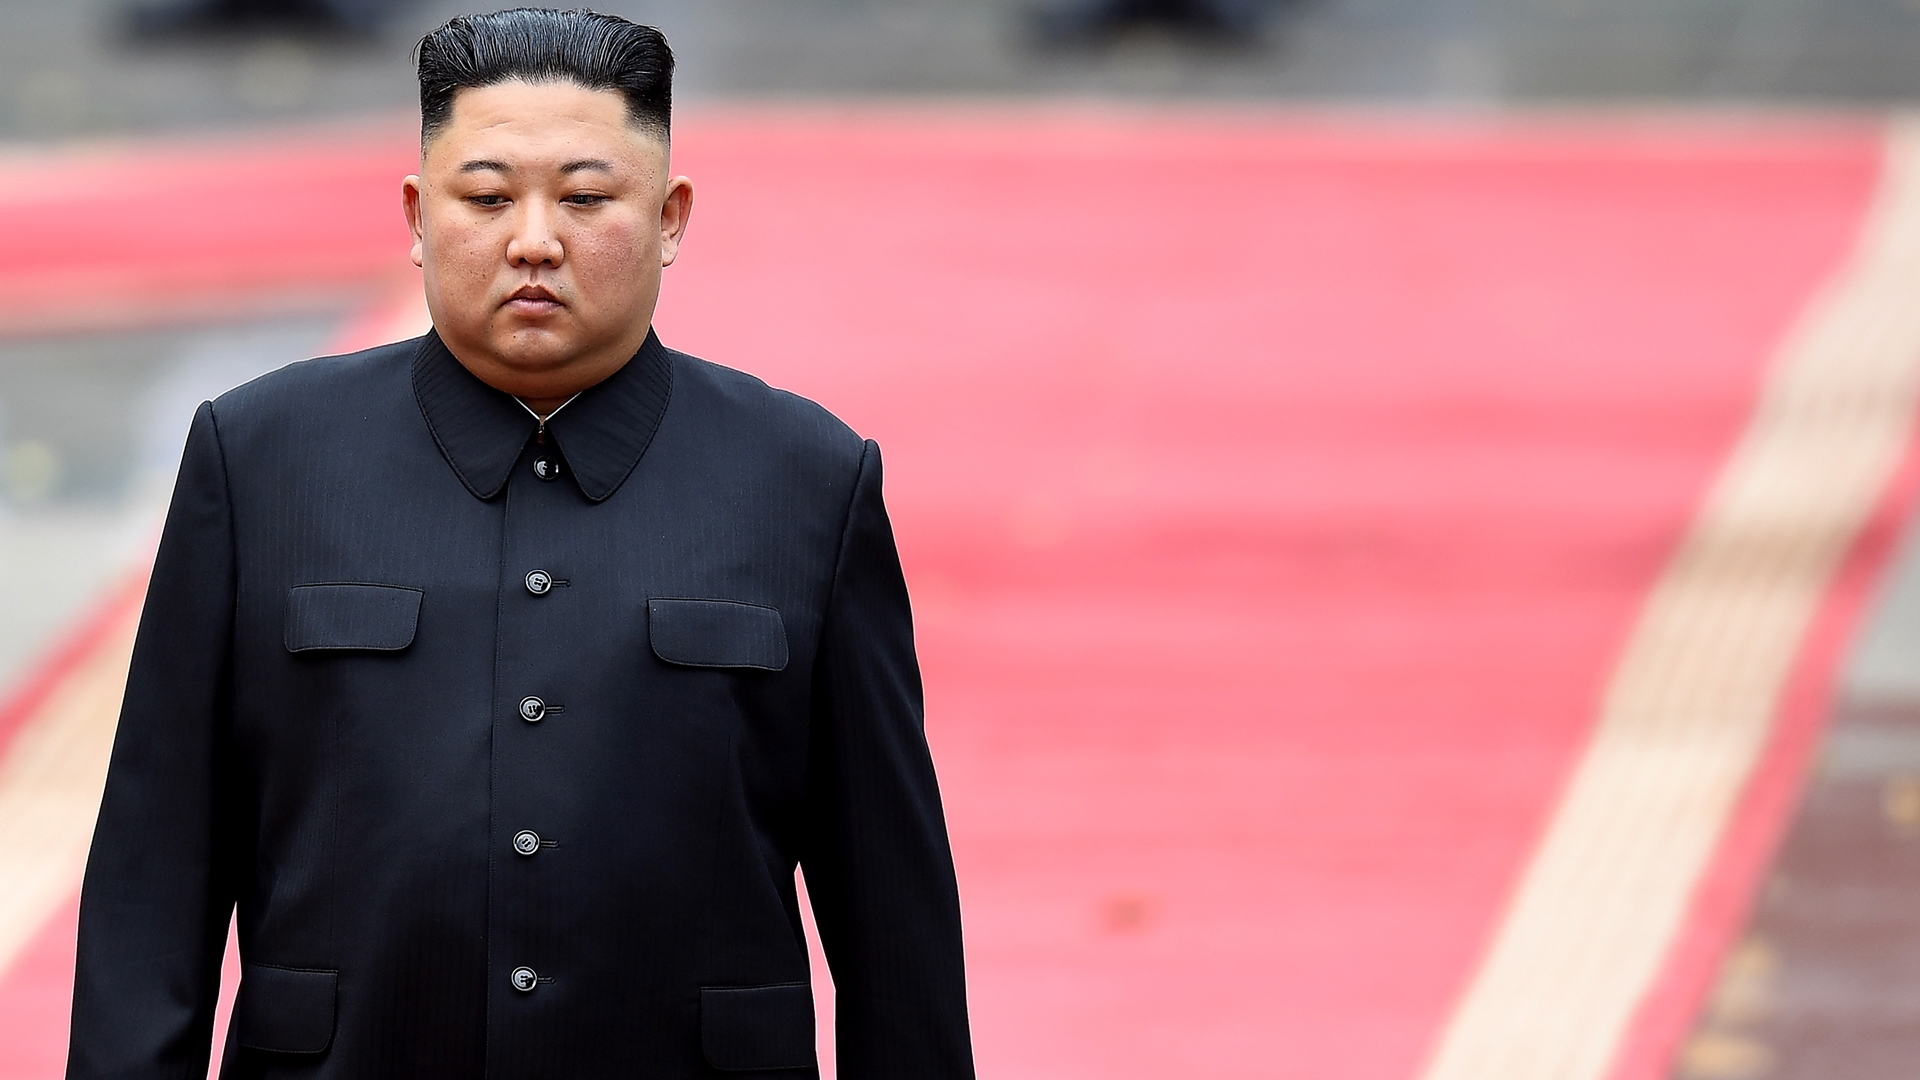 North Korea's leader Kim Jong Un attends a welcoming ceremony at the Presidential Palace in Hanoi on March 1, 2019. (Credit: MANAN VATSYAYANA/AFP/Getty ImagesNorth Korea's leader Kim Jong Un attends a welcoming ceremony at the Presidential Palace in Hanoi on March 1, 2019. (Credit: MANAN VATSYAYANA/AFP/Getty Images)